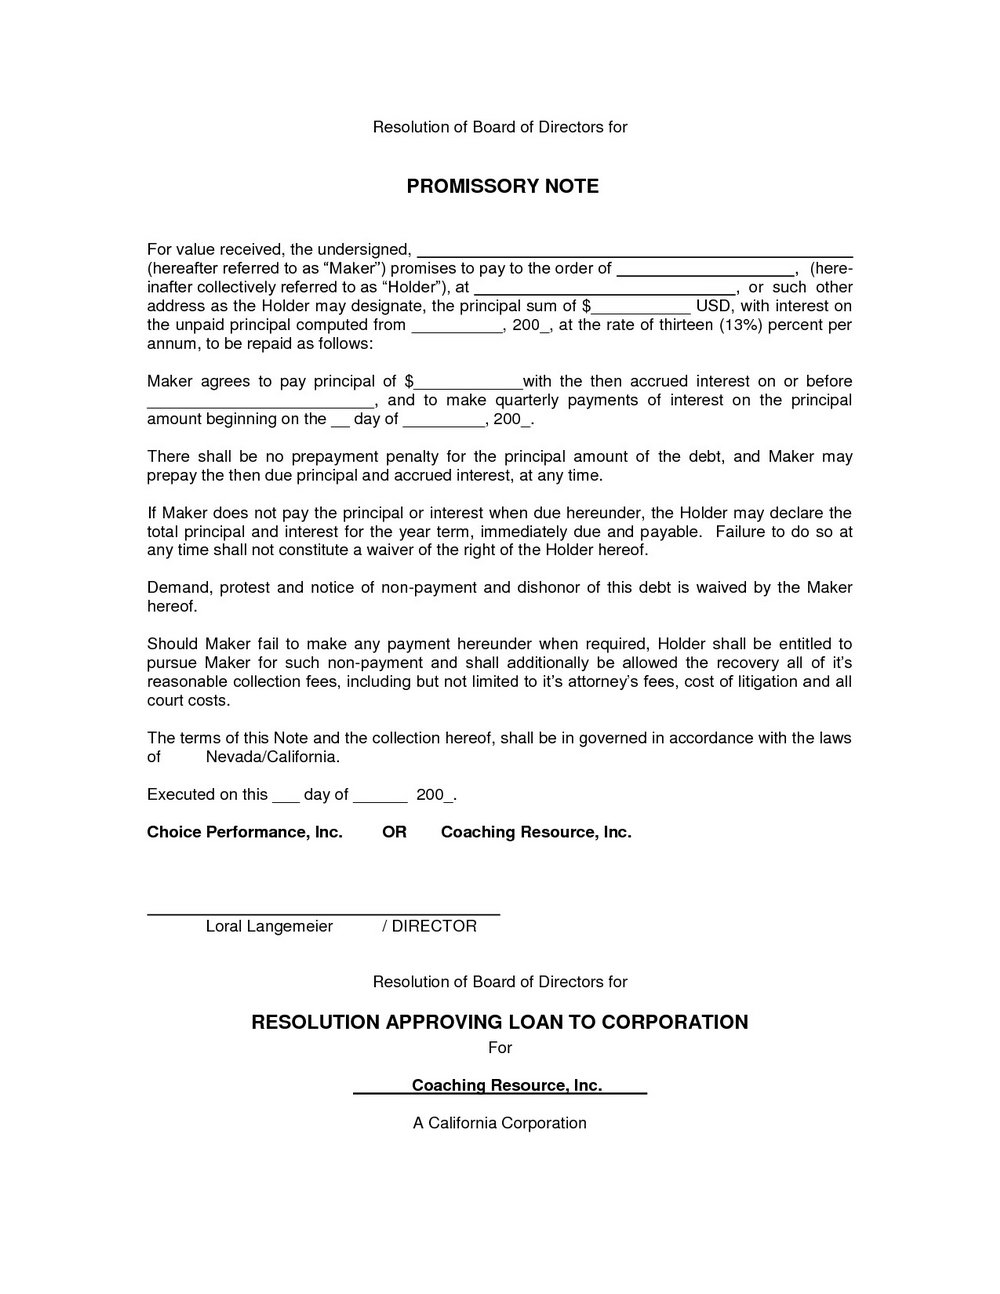 Blank Promissory Note Forms